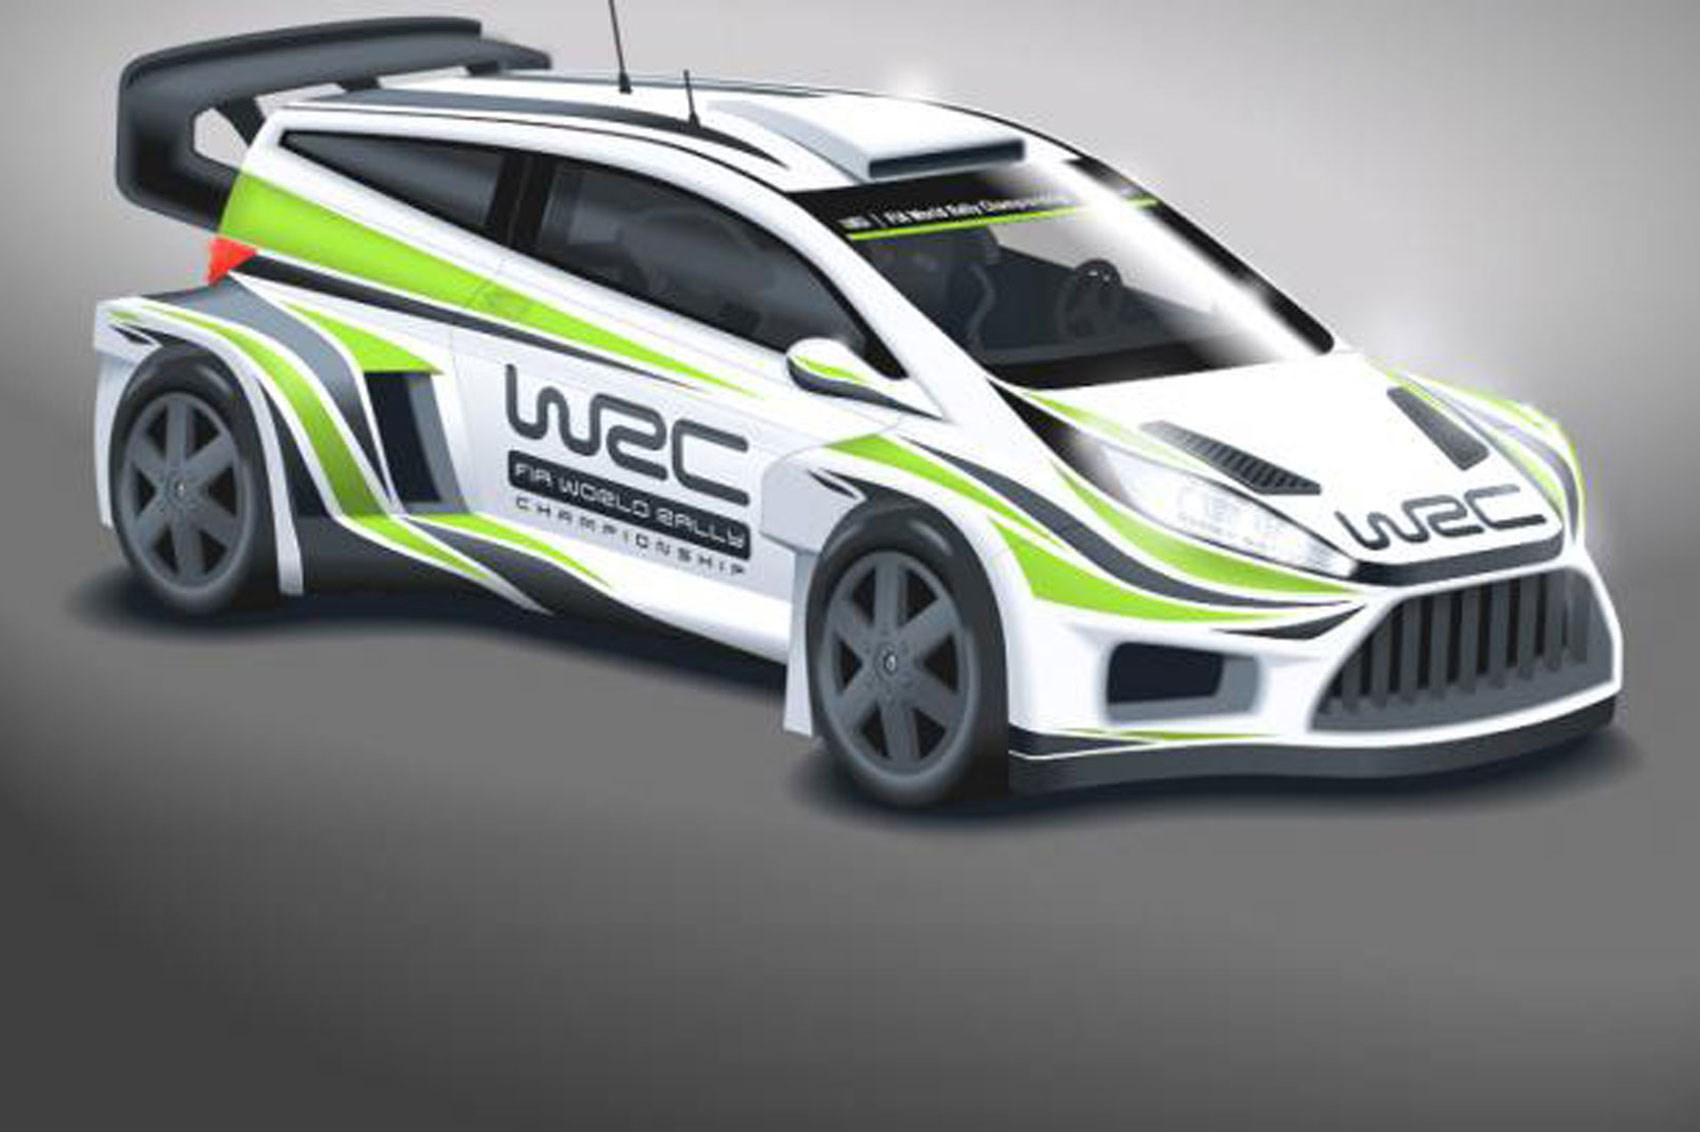 Ultrablogus  Gorgeous Wild New Look For Wrc Cars In  By Car Magazine With Magnificent Wrc Cars Will Get Wider Bodies Bigger Wings And More Power For  With Divine Bmw  Interior Also Dodge Challenger  Interior In Addition Custom Jeep Cherokee Interior And  Toyota Tundra Interior As Well As Scion Frs Interior Parts Additionally  Civic Si Interior From Carmagazinecouk With Ultrablogus  Magnificent Wild New Look For Wrc Cars In  By Car Magazine With Divine Wrc Cars Will Get Wider Bodies Bigger Wings And More Power For  And Gorgeous Bmw  Interior Also Dodge Challenger  Interior In Addition Custom Jeep Cherokee Interior From Carmagazinecouk